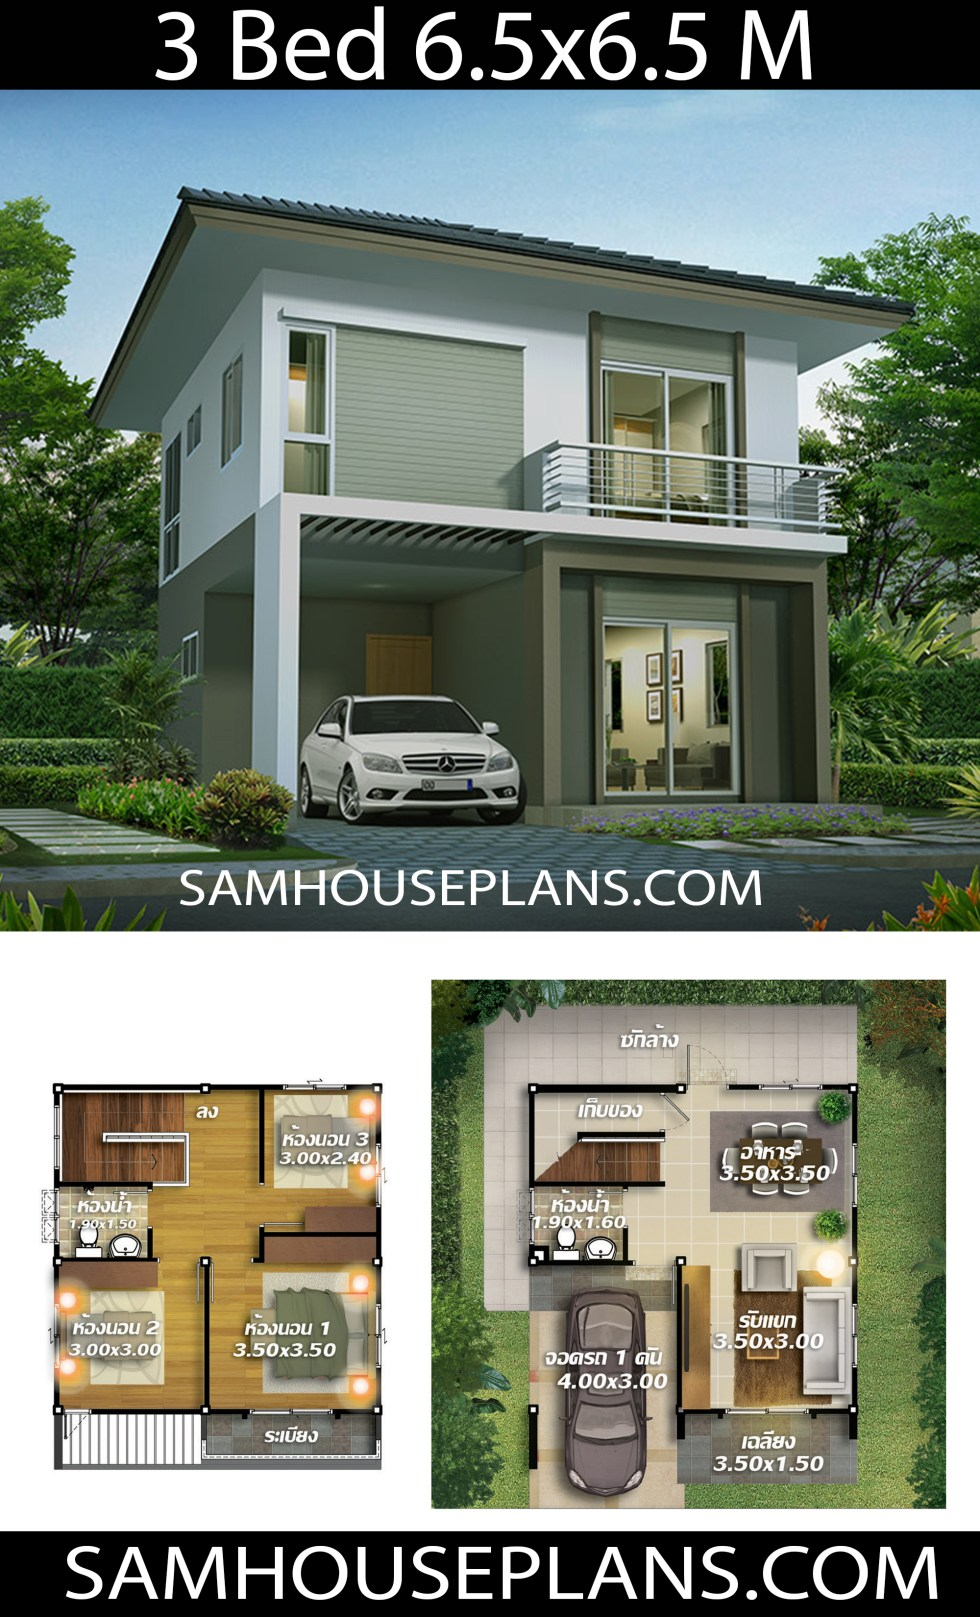 House Plans 6 5x6 5 With 3 Bedroom Samhouseplans